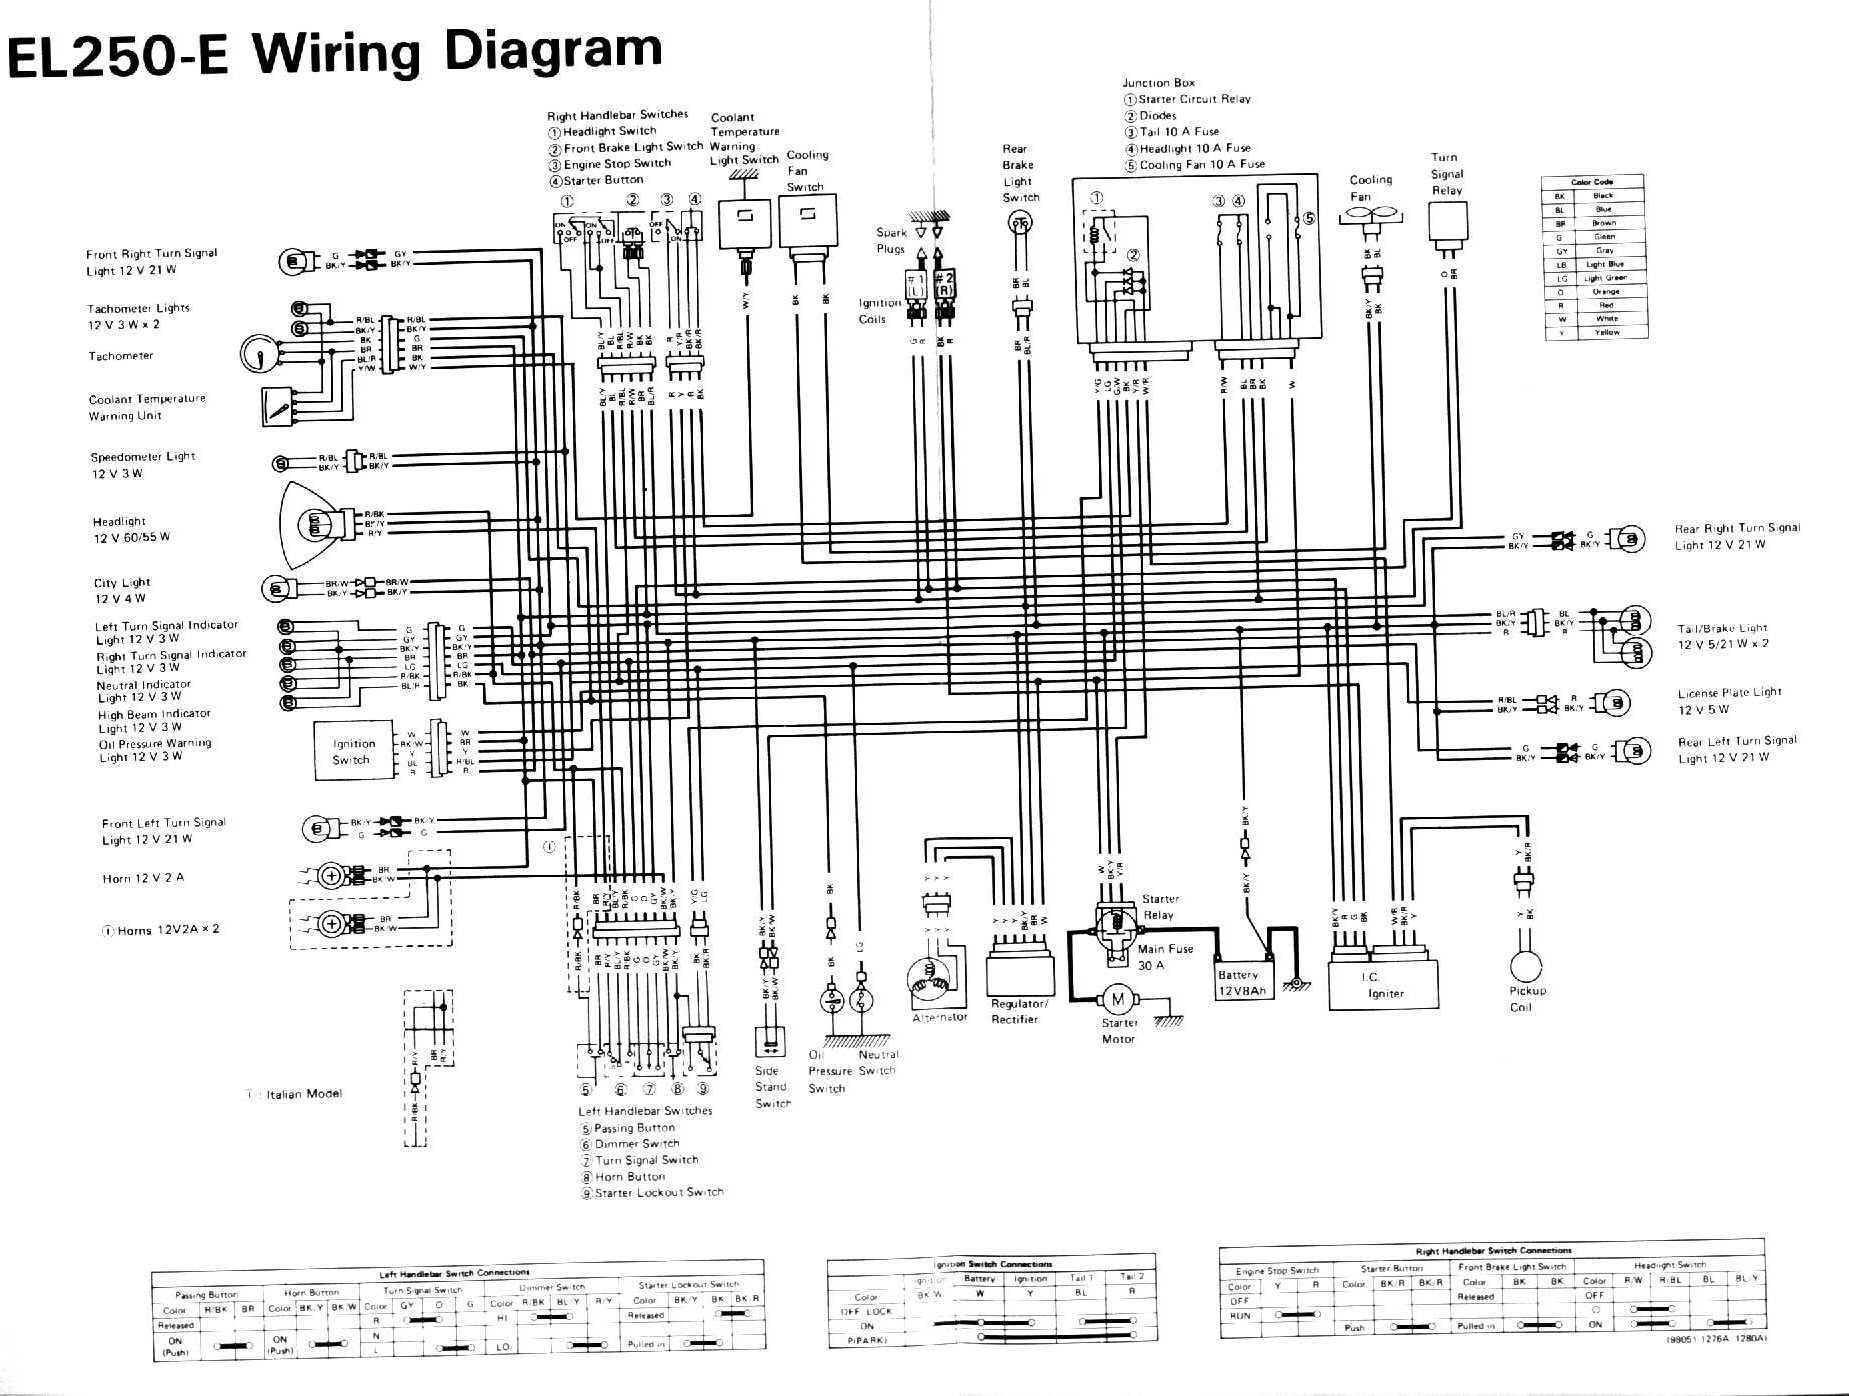 wiring diagram for 1997 kawasaki 550 mule wiring diagram for kawasaki mule 3010 electrical diagram images mule 2510 wiring